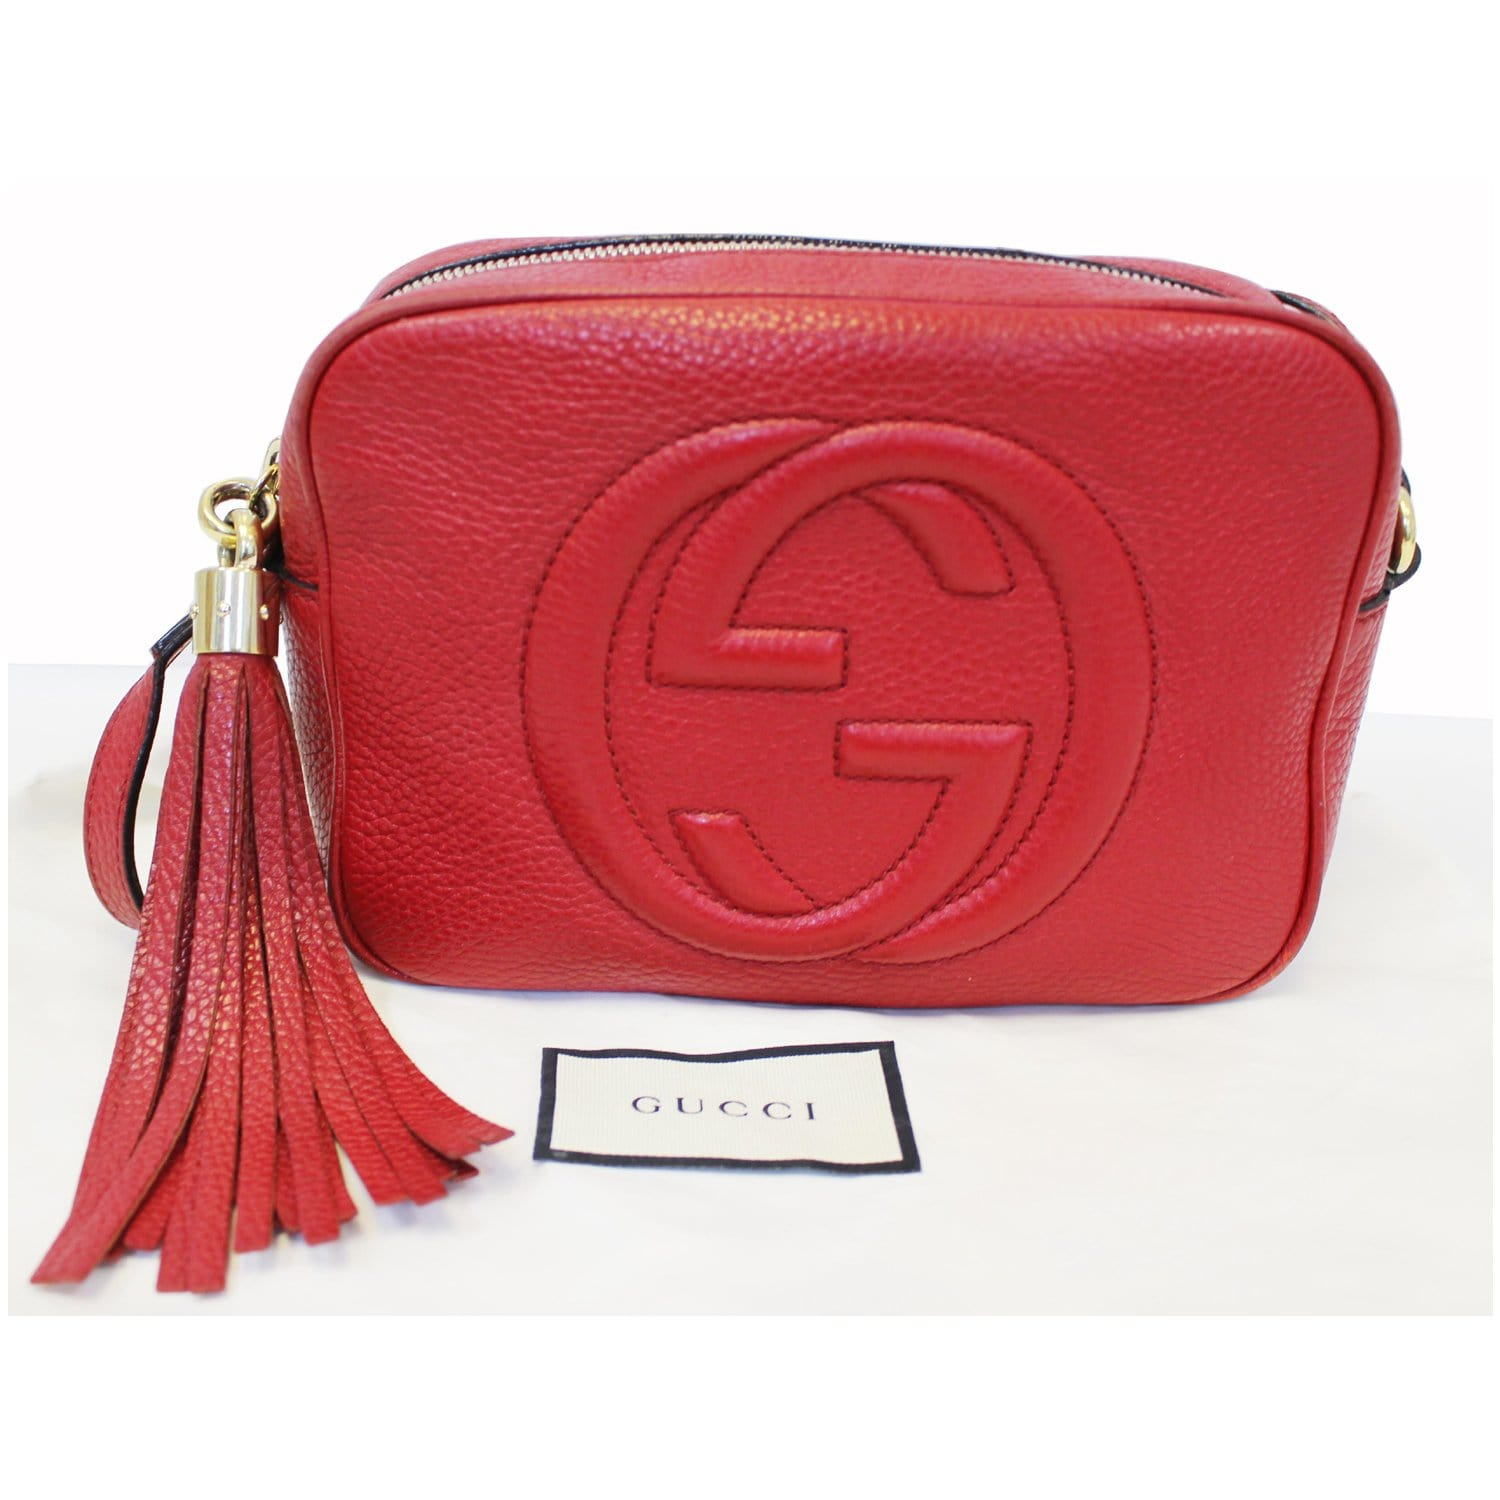 786c9cf0cae6 GUCCI Soho Disco Pebbled Leather Small Crossbody Bag Red-US